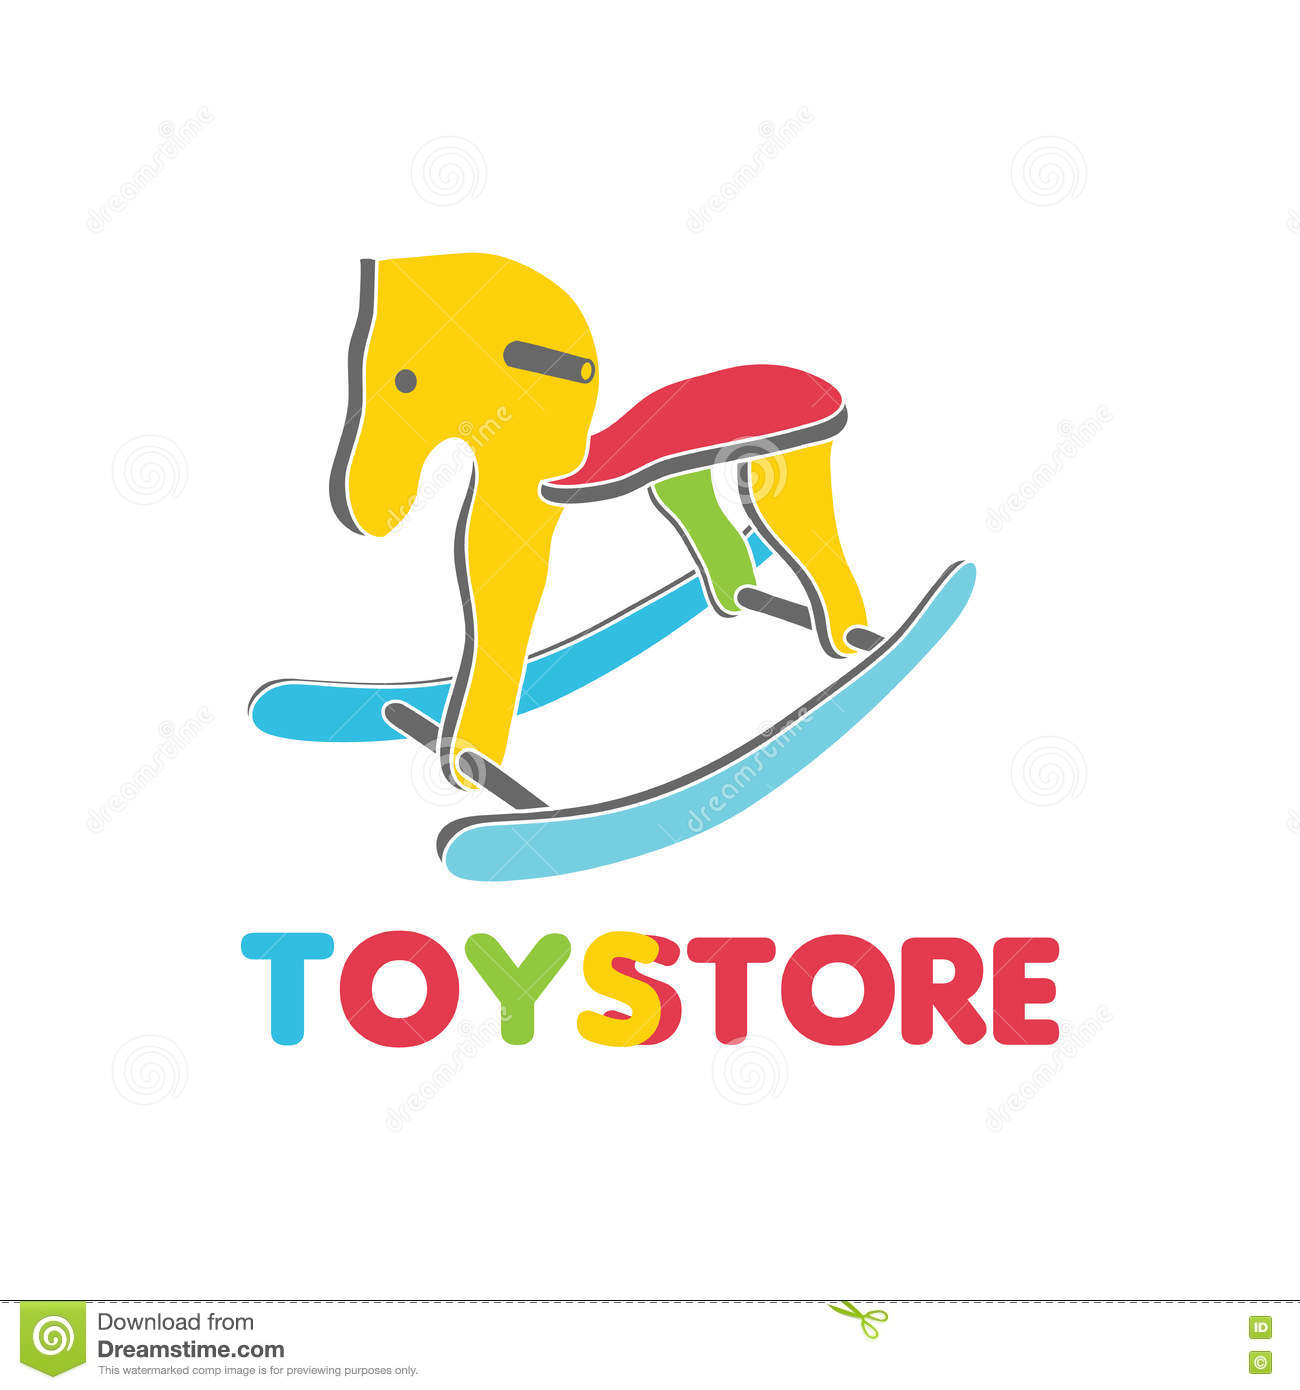 Vector Logo Toy Store Label Stylized Toy Wooden Horse Full Color Beautiful Interesting Design A Logo For The Company Stock Illustration Illustration Of Activity Corporate 80314280